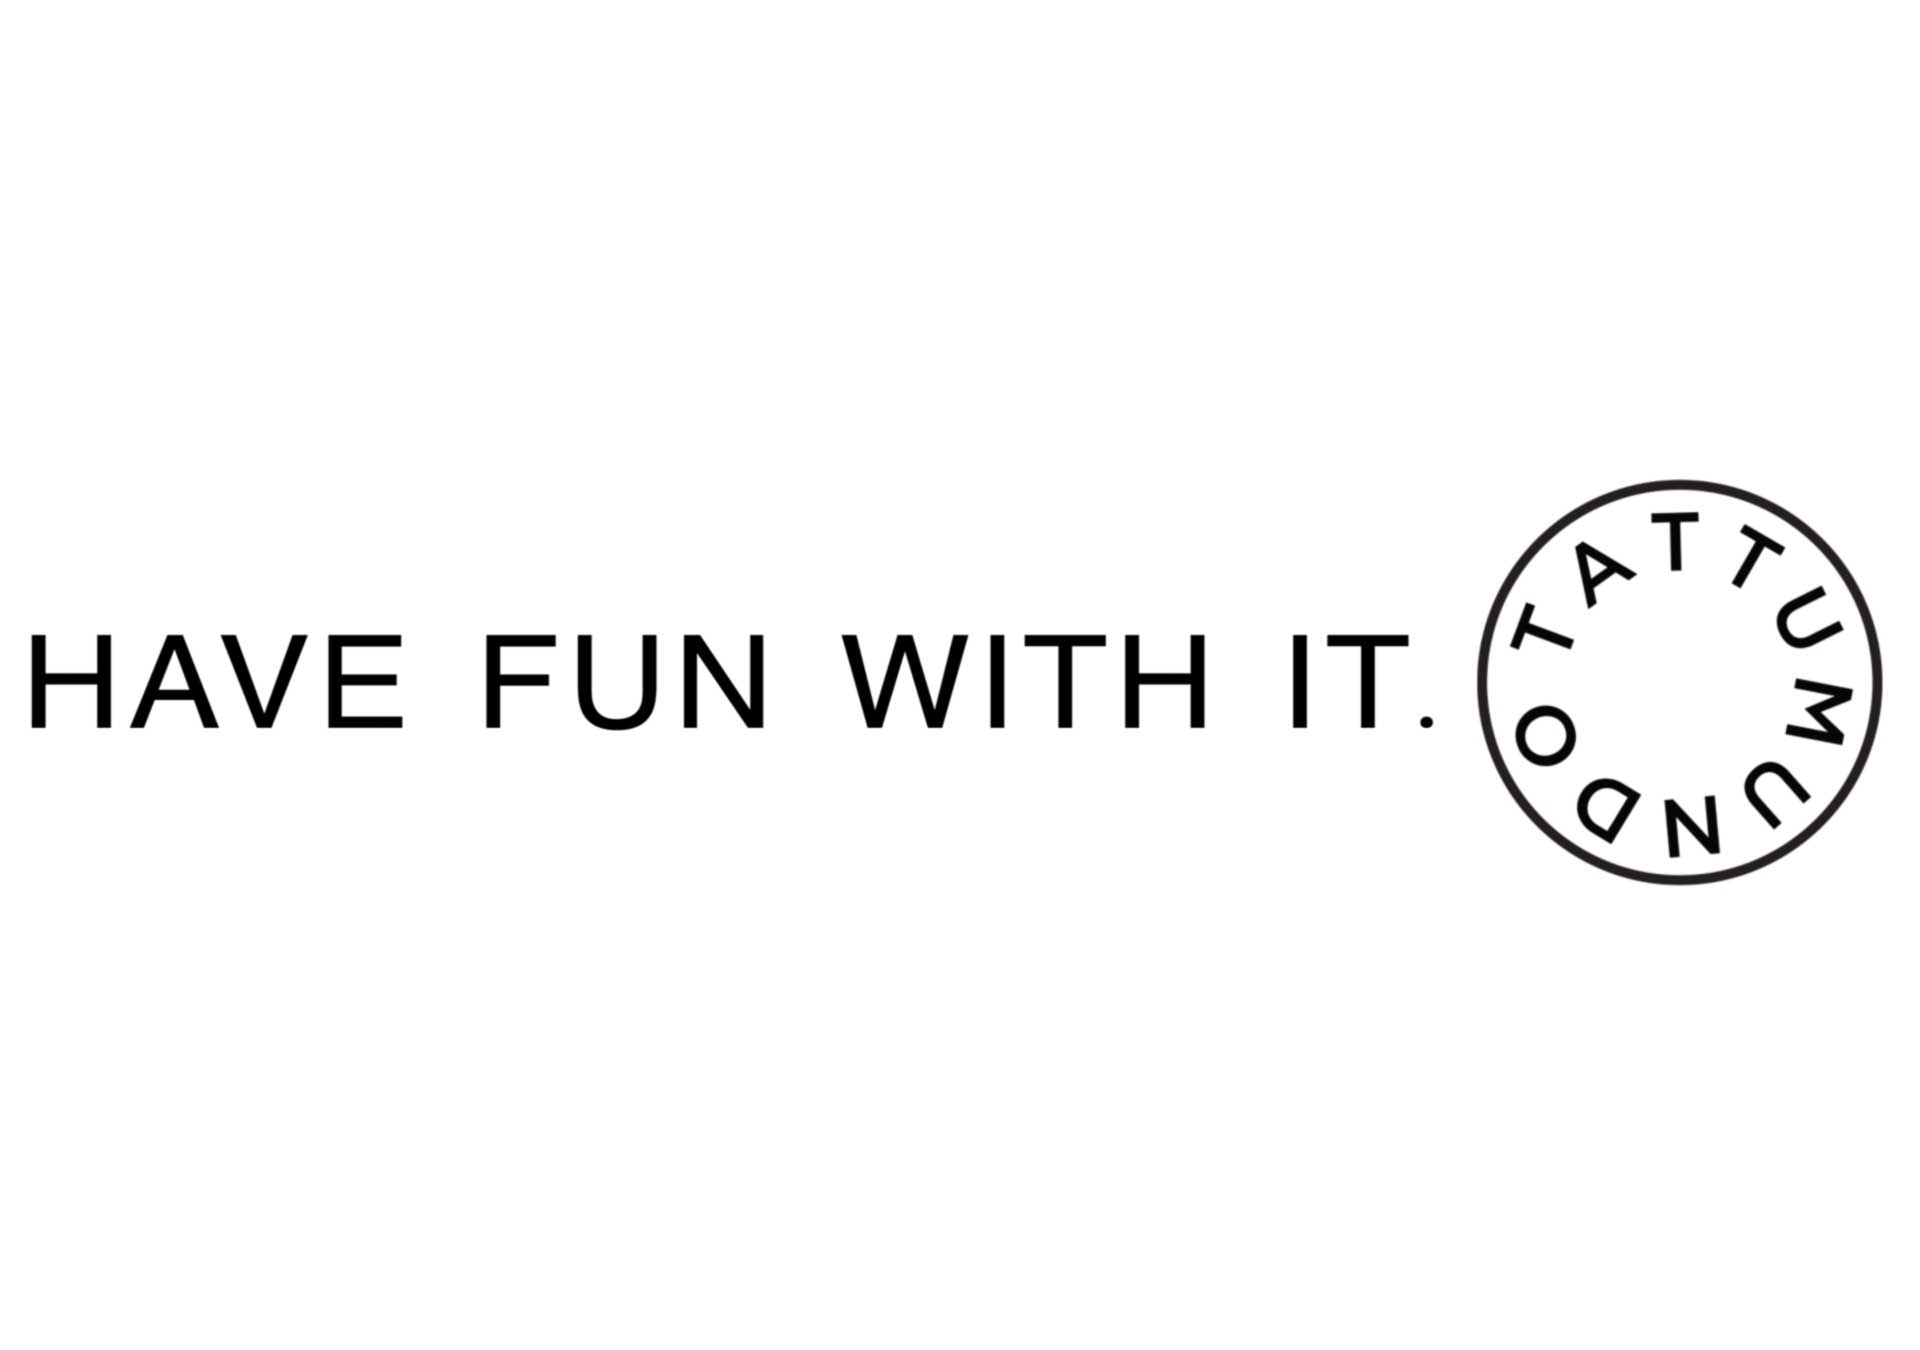 Have fun with it.